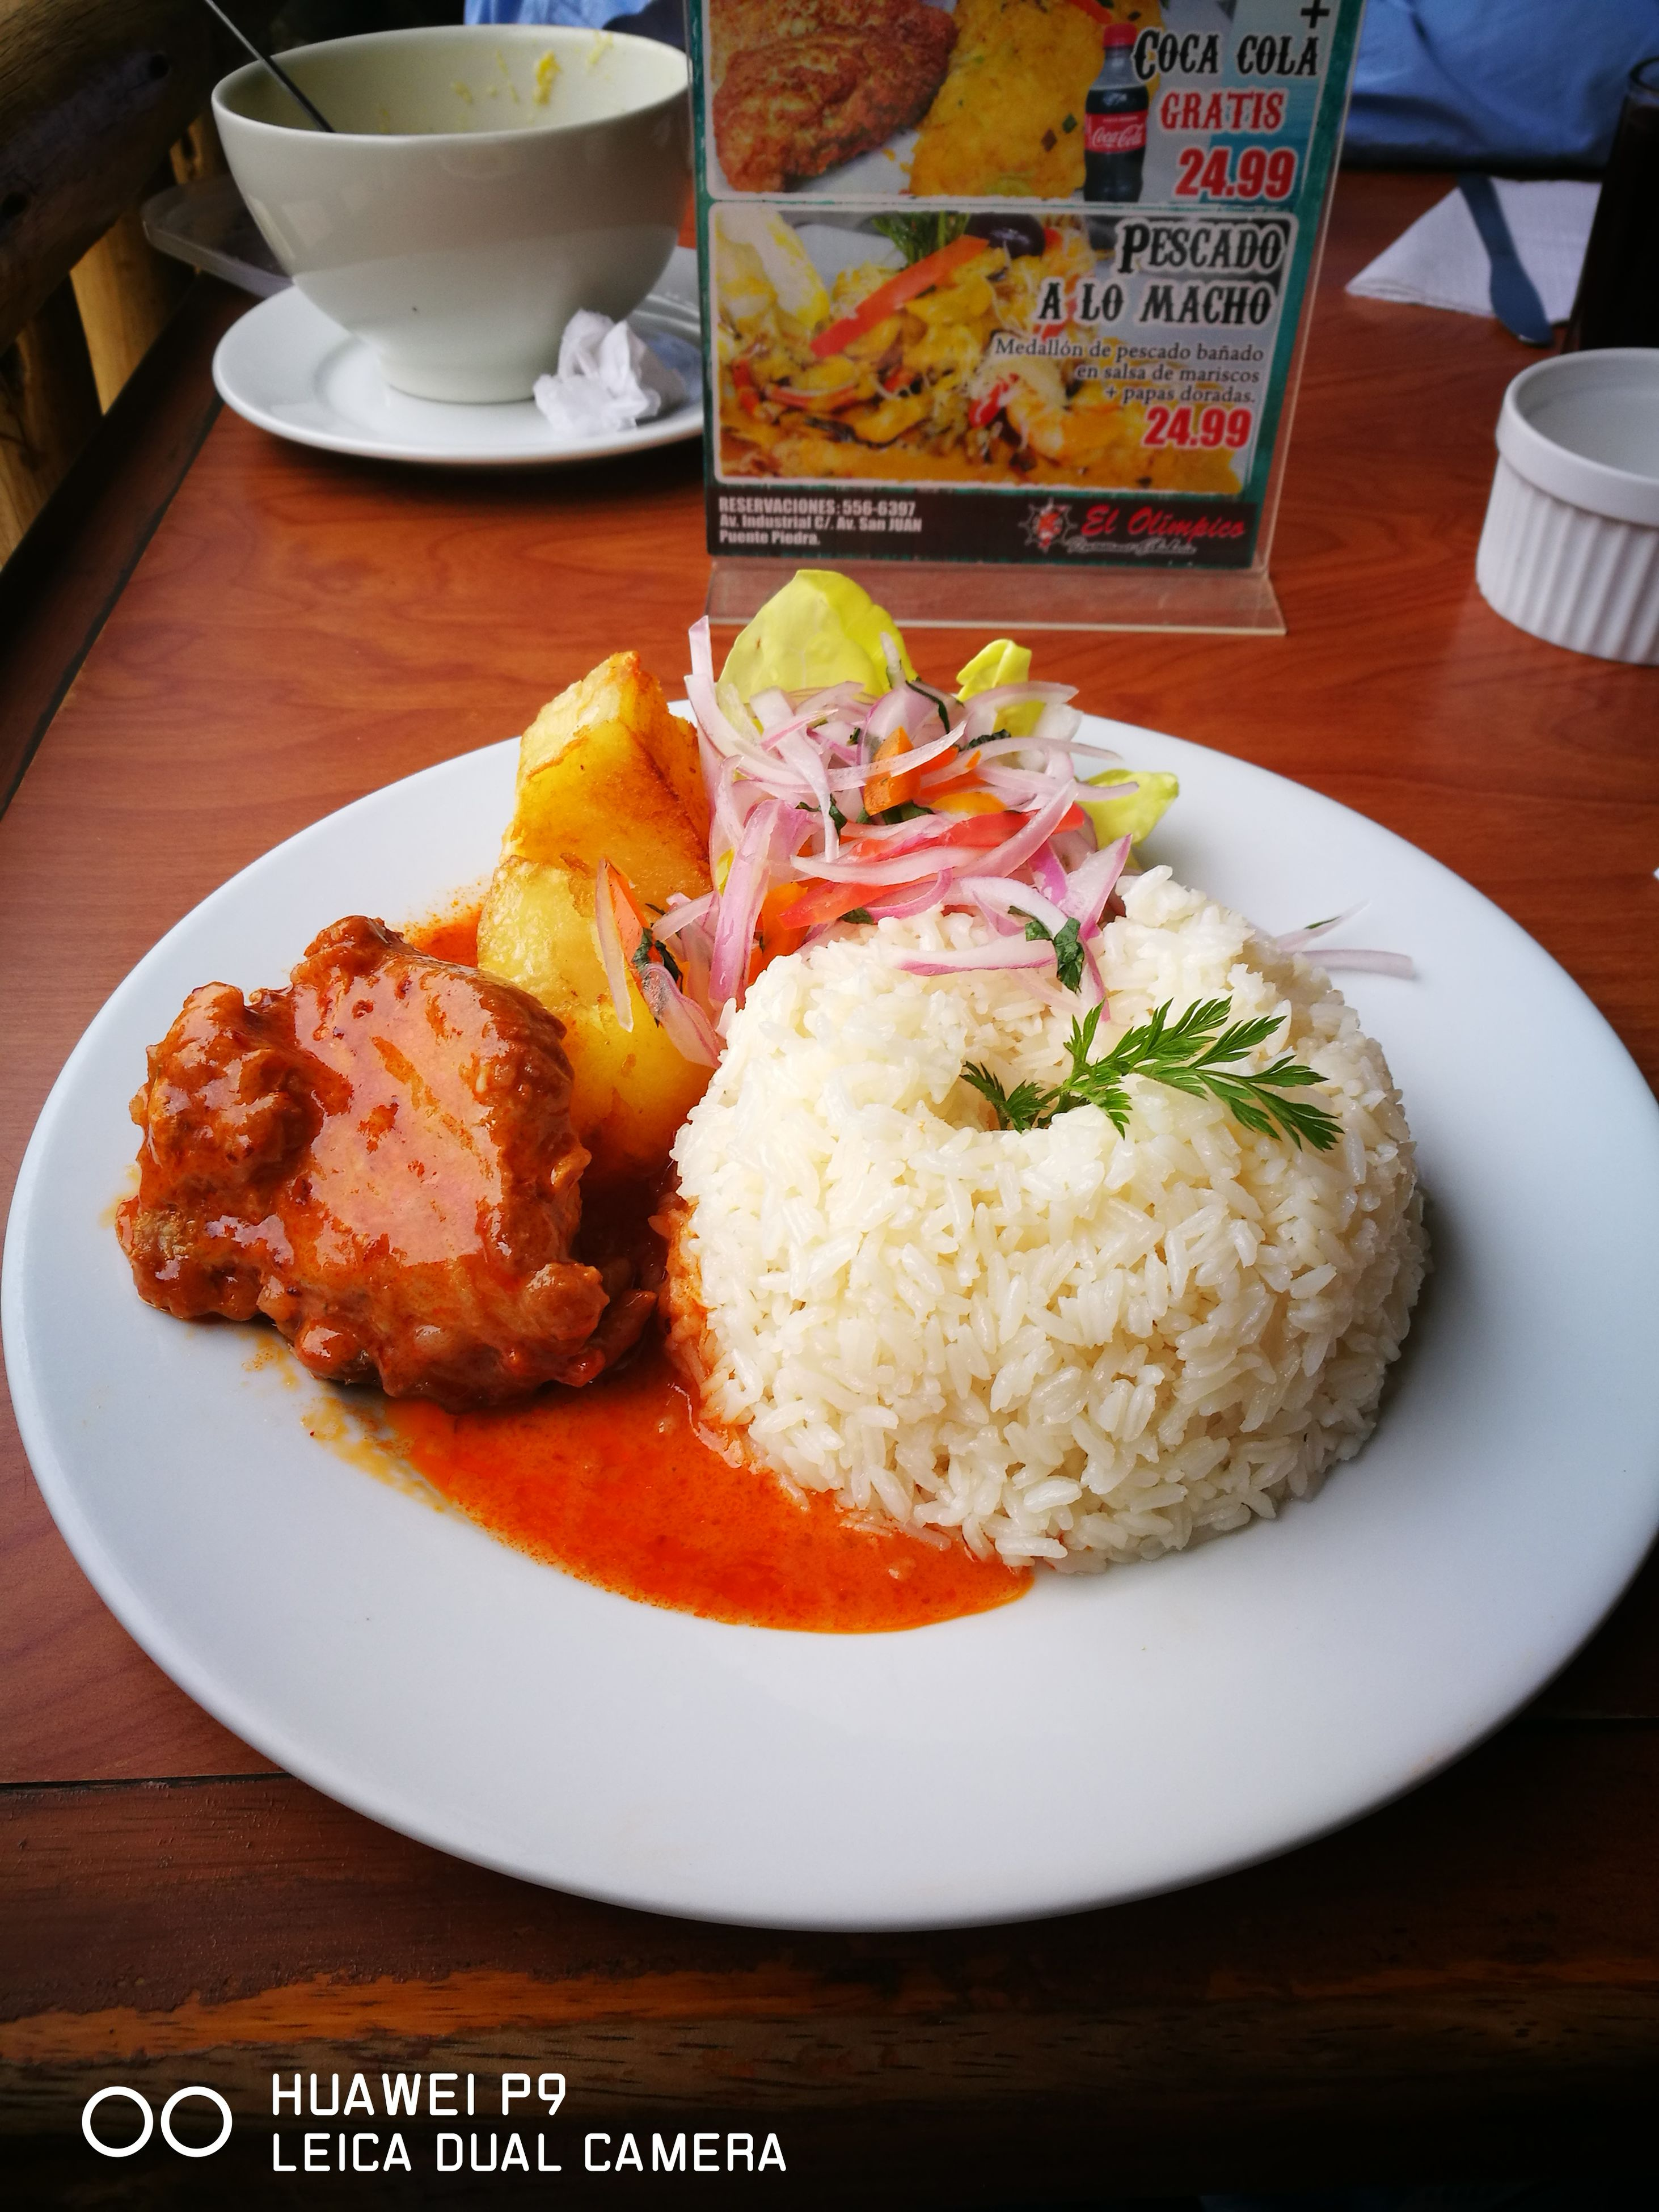 food and drink, plate, food, table, ready-to-eat, serving size, indoors, rice - food staple, freshness, high angle view, healthy eating, rice, no people, close-up, day